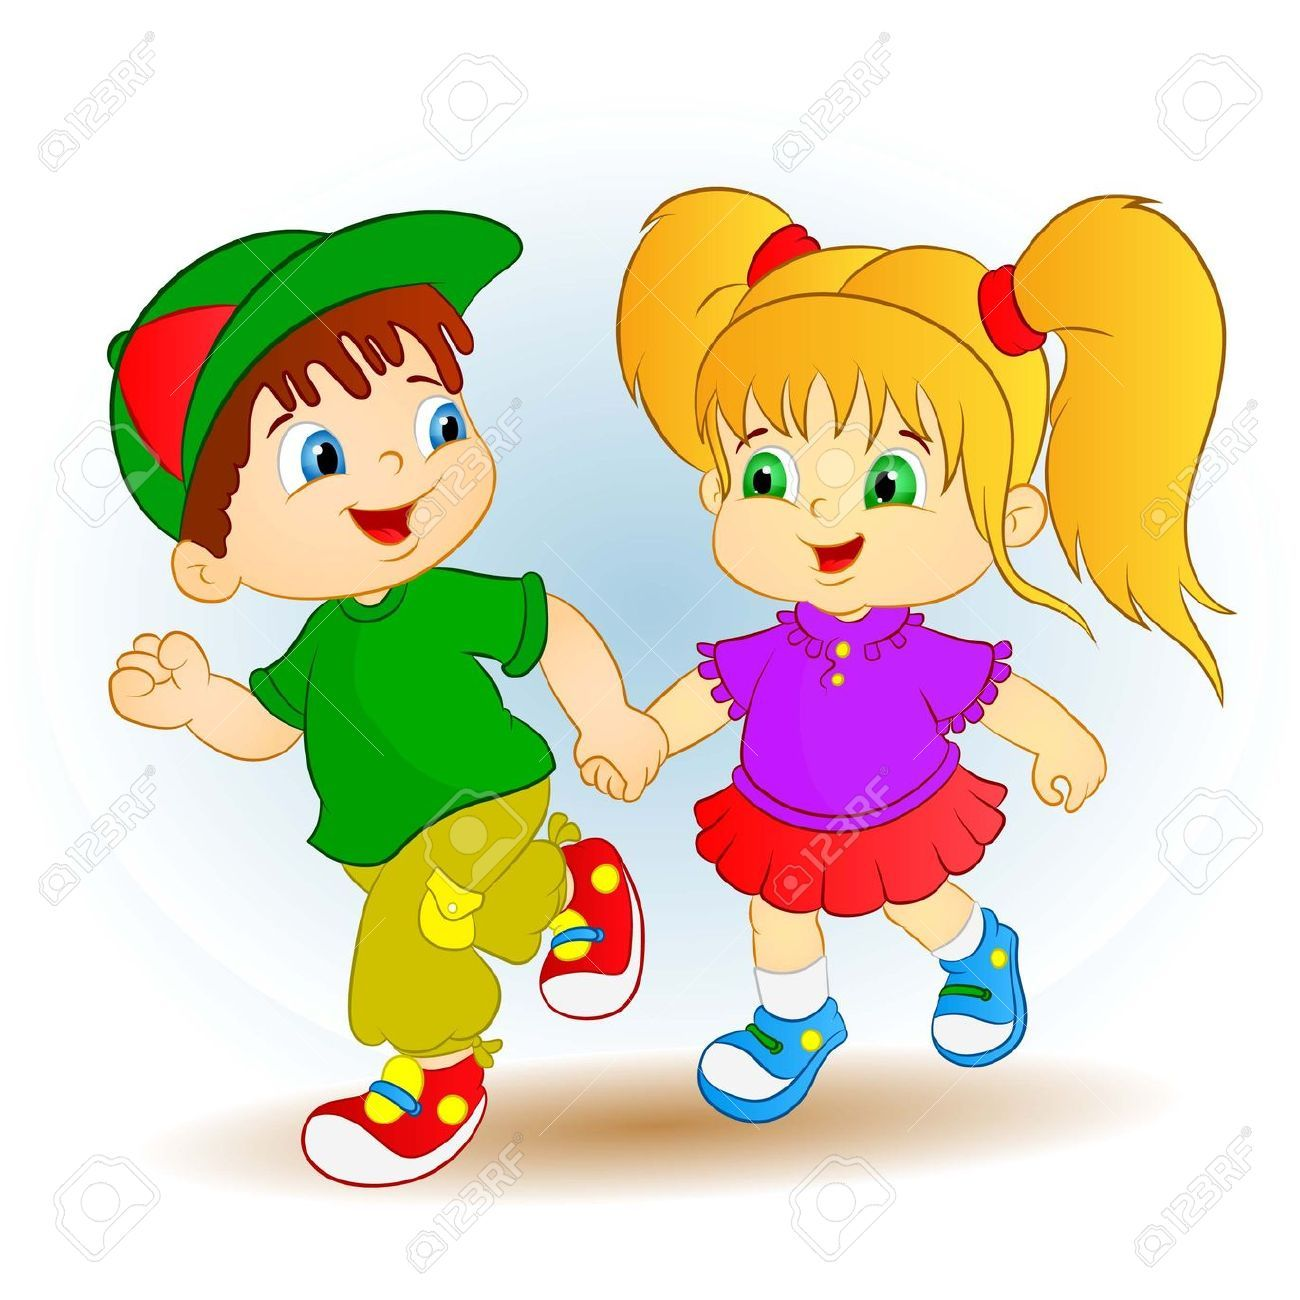 Image result for cartoon boy and girl Kids clipart, Cute